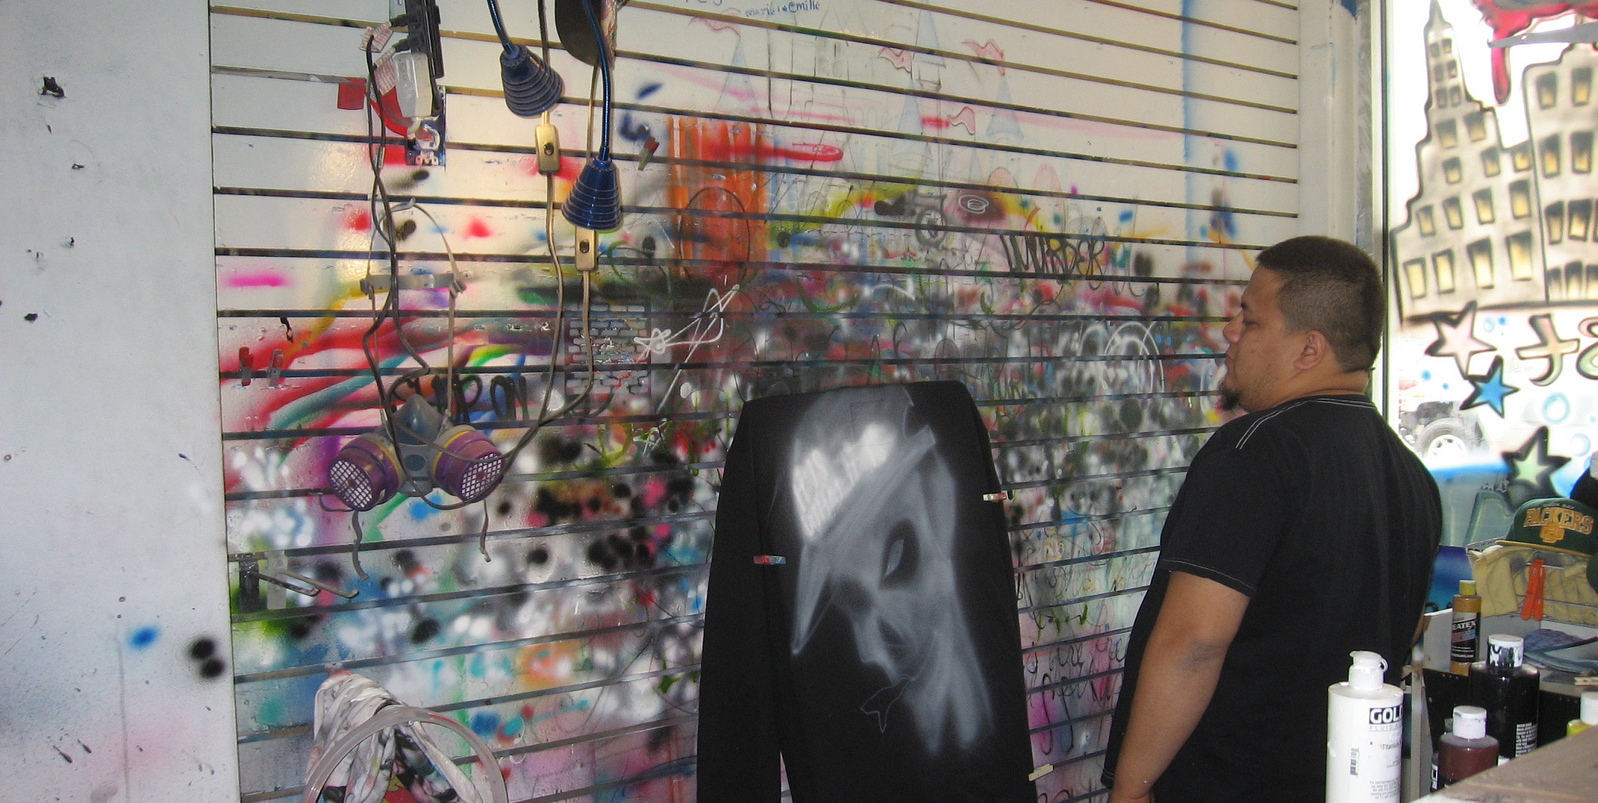 Airbrush shop, Federal Street | Photo: Gayle Christiansen